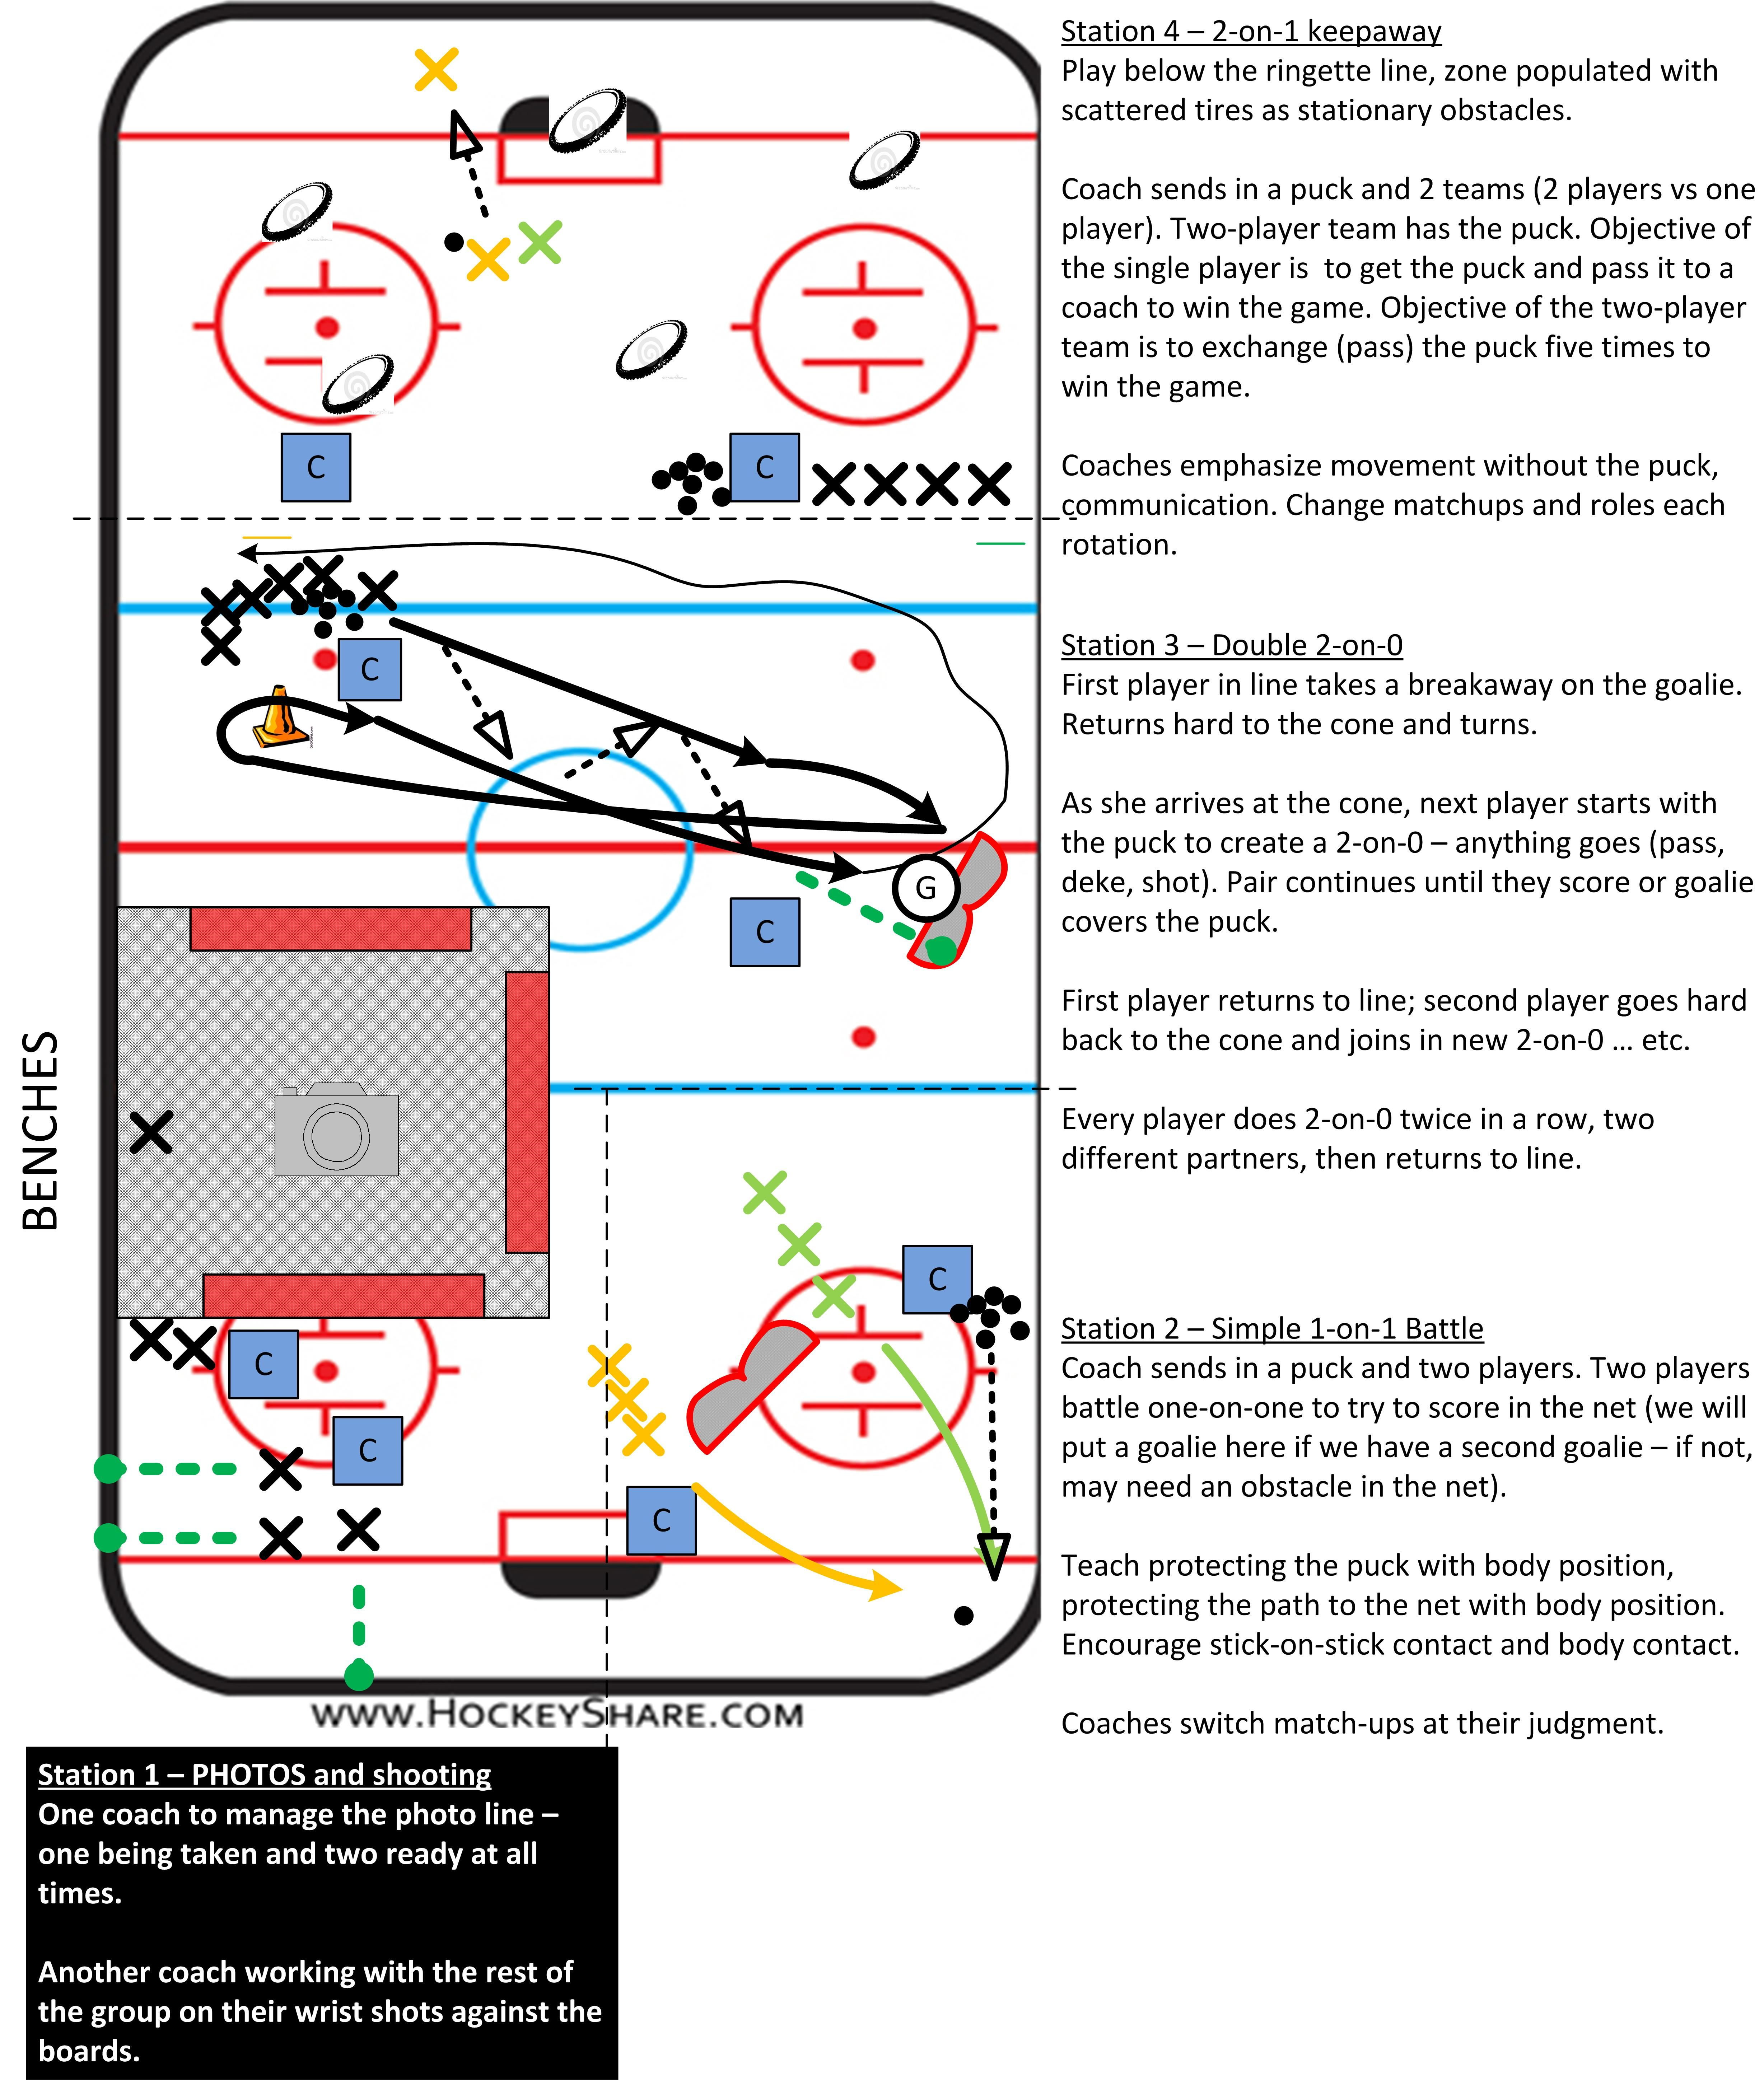 Full Ice Practice Plan For Novice U8 Stations Designed To Accomodate The Dreaded Picture Day Three Station Hockey Drills Hockey Equipment Hockey Training